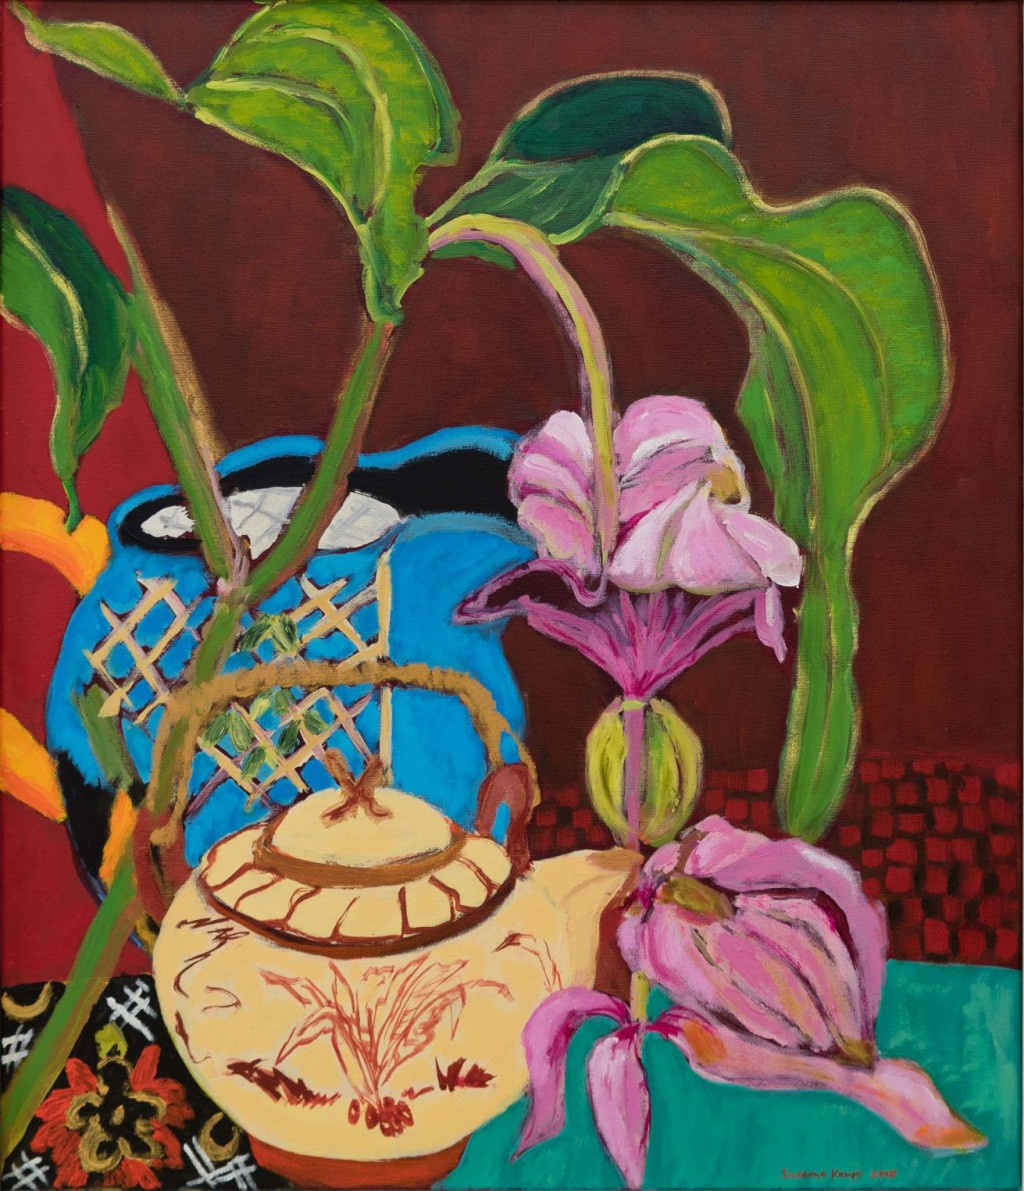 Medinilla  2015  oil on canvas  70 x 60 cm/28 x 24 in